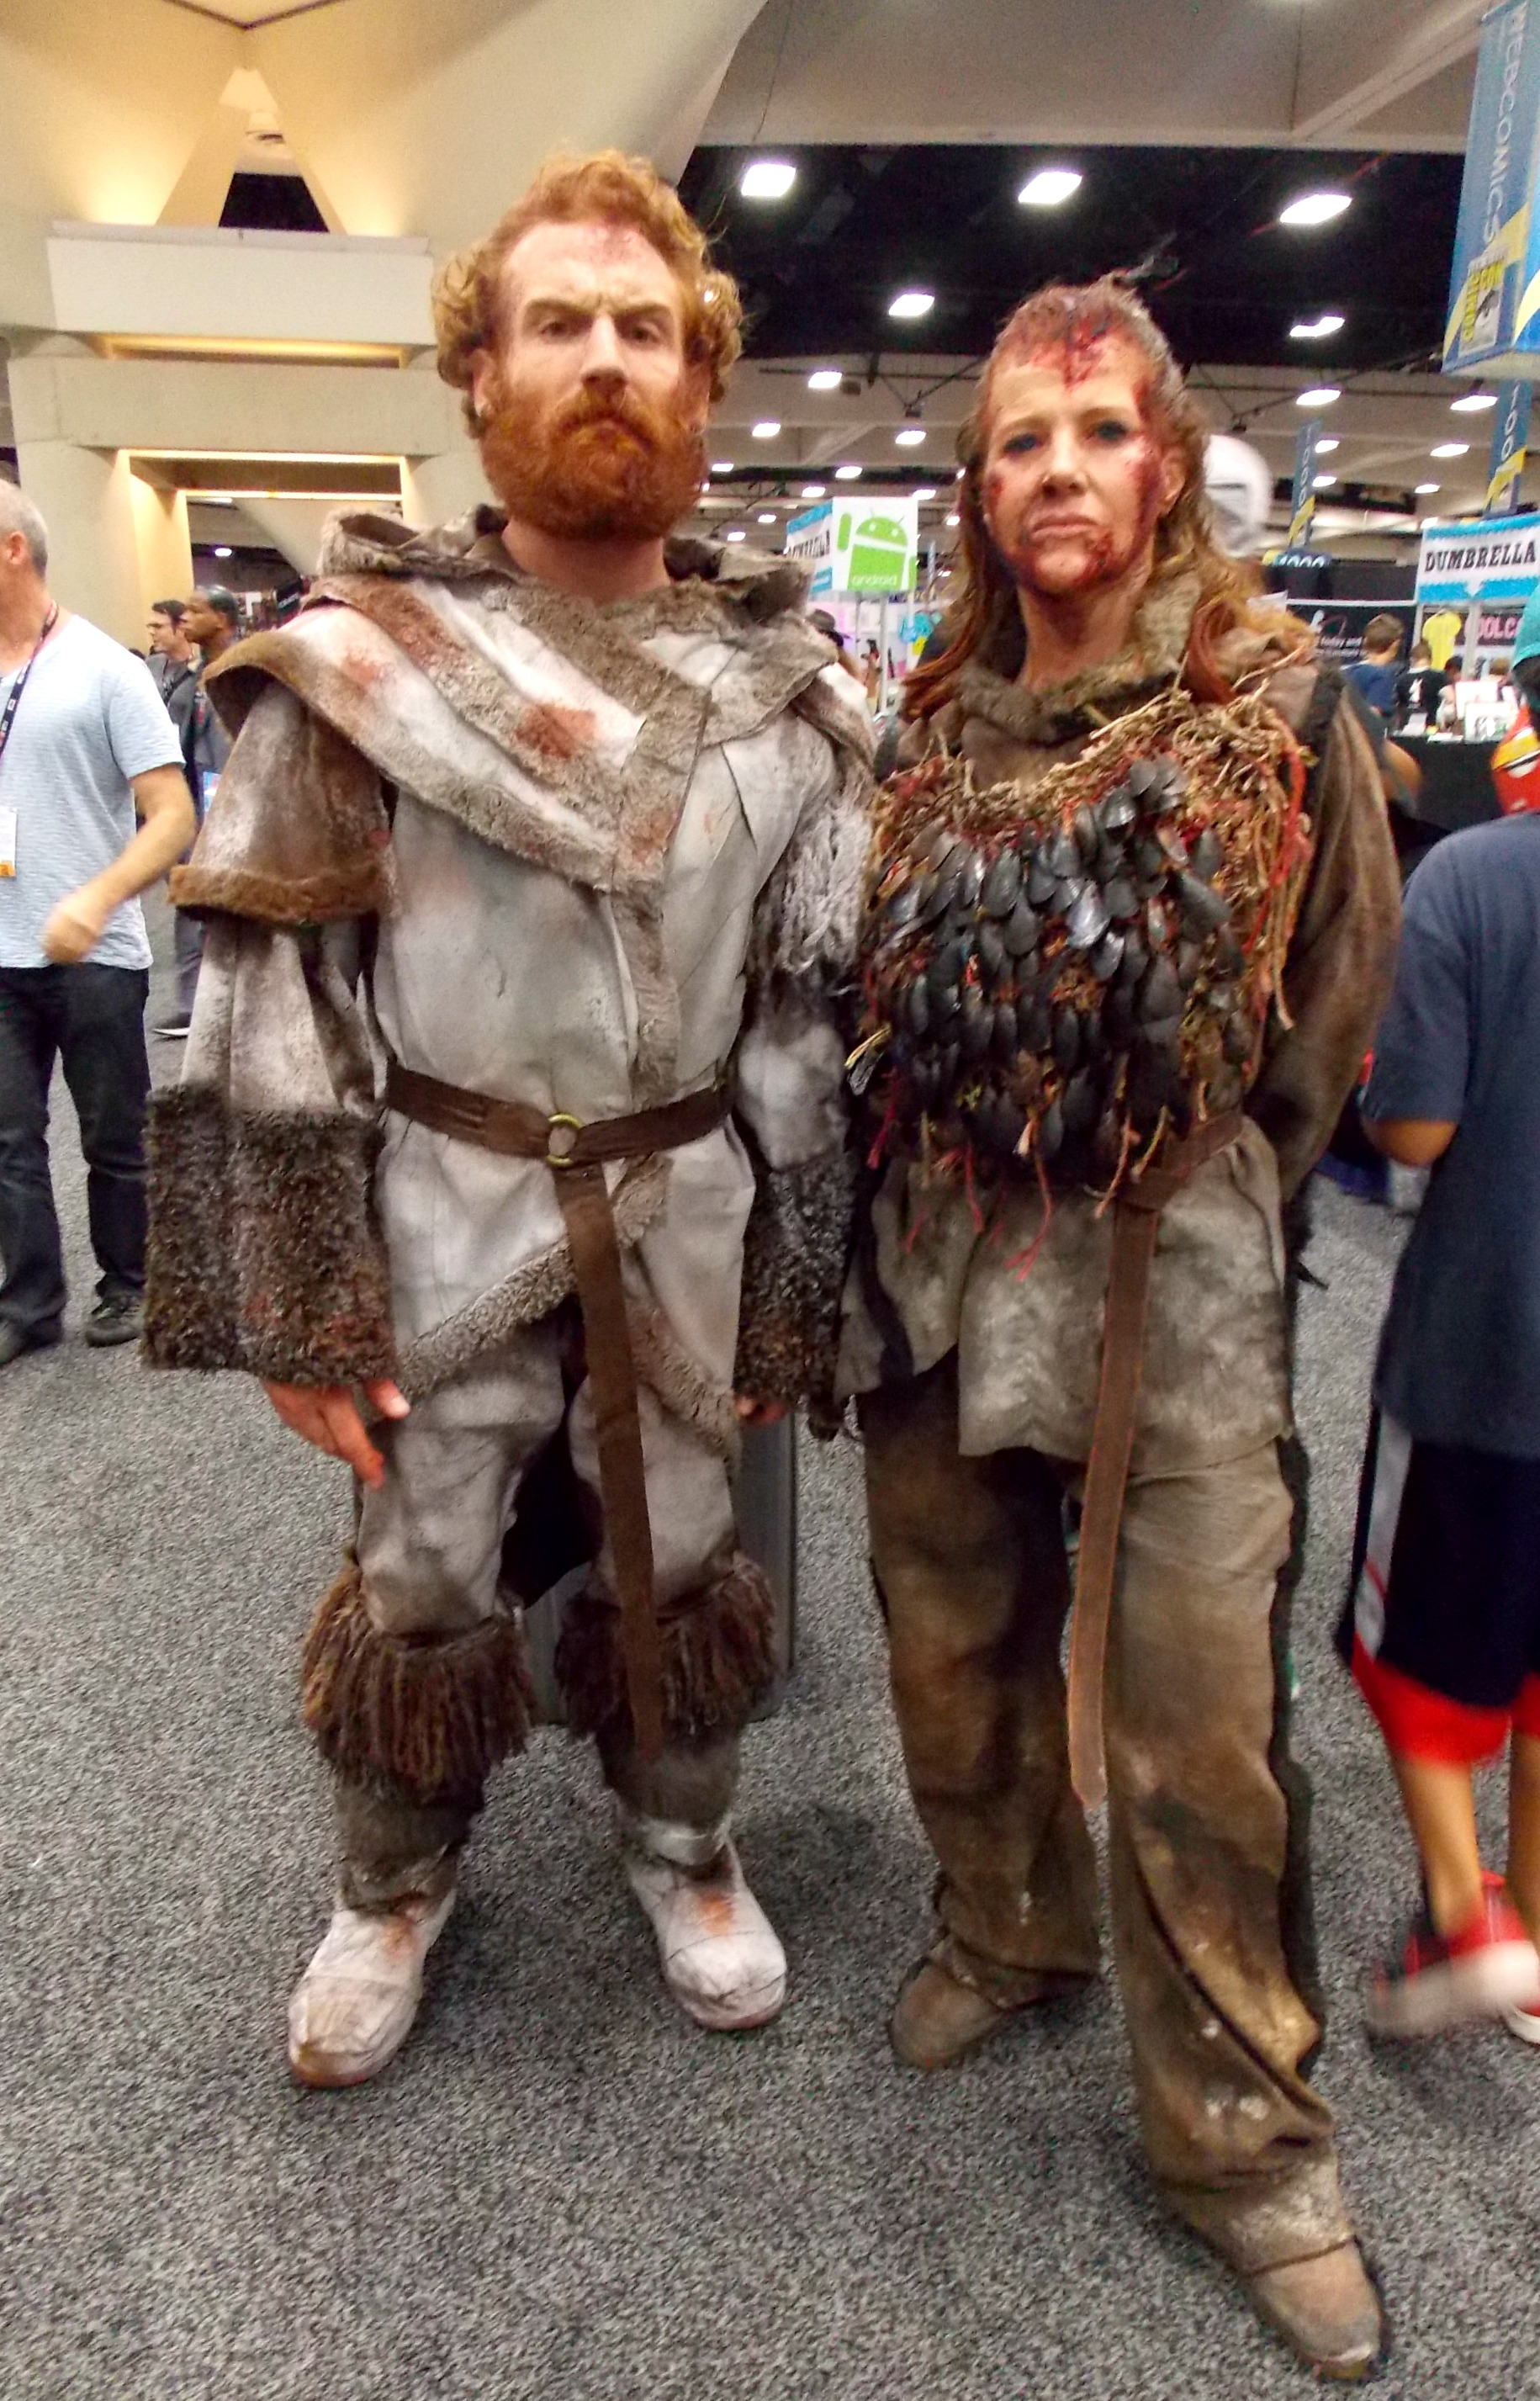 Tormund and Karsi